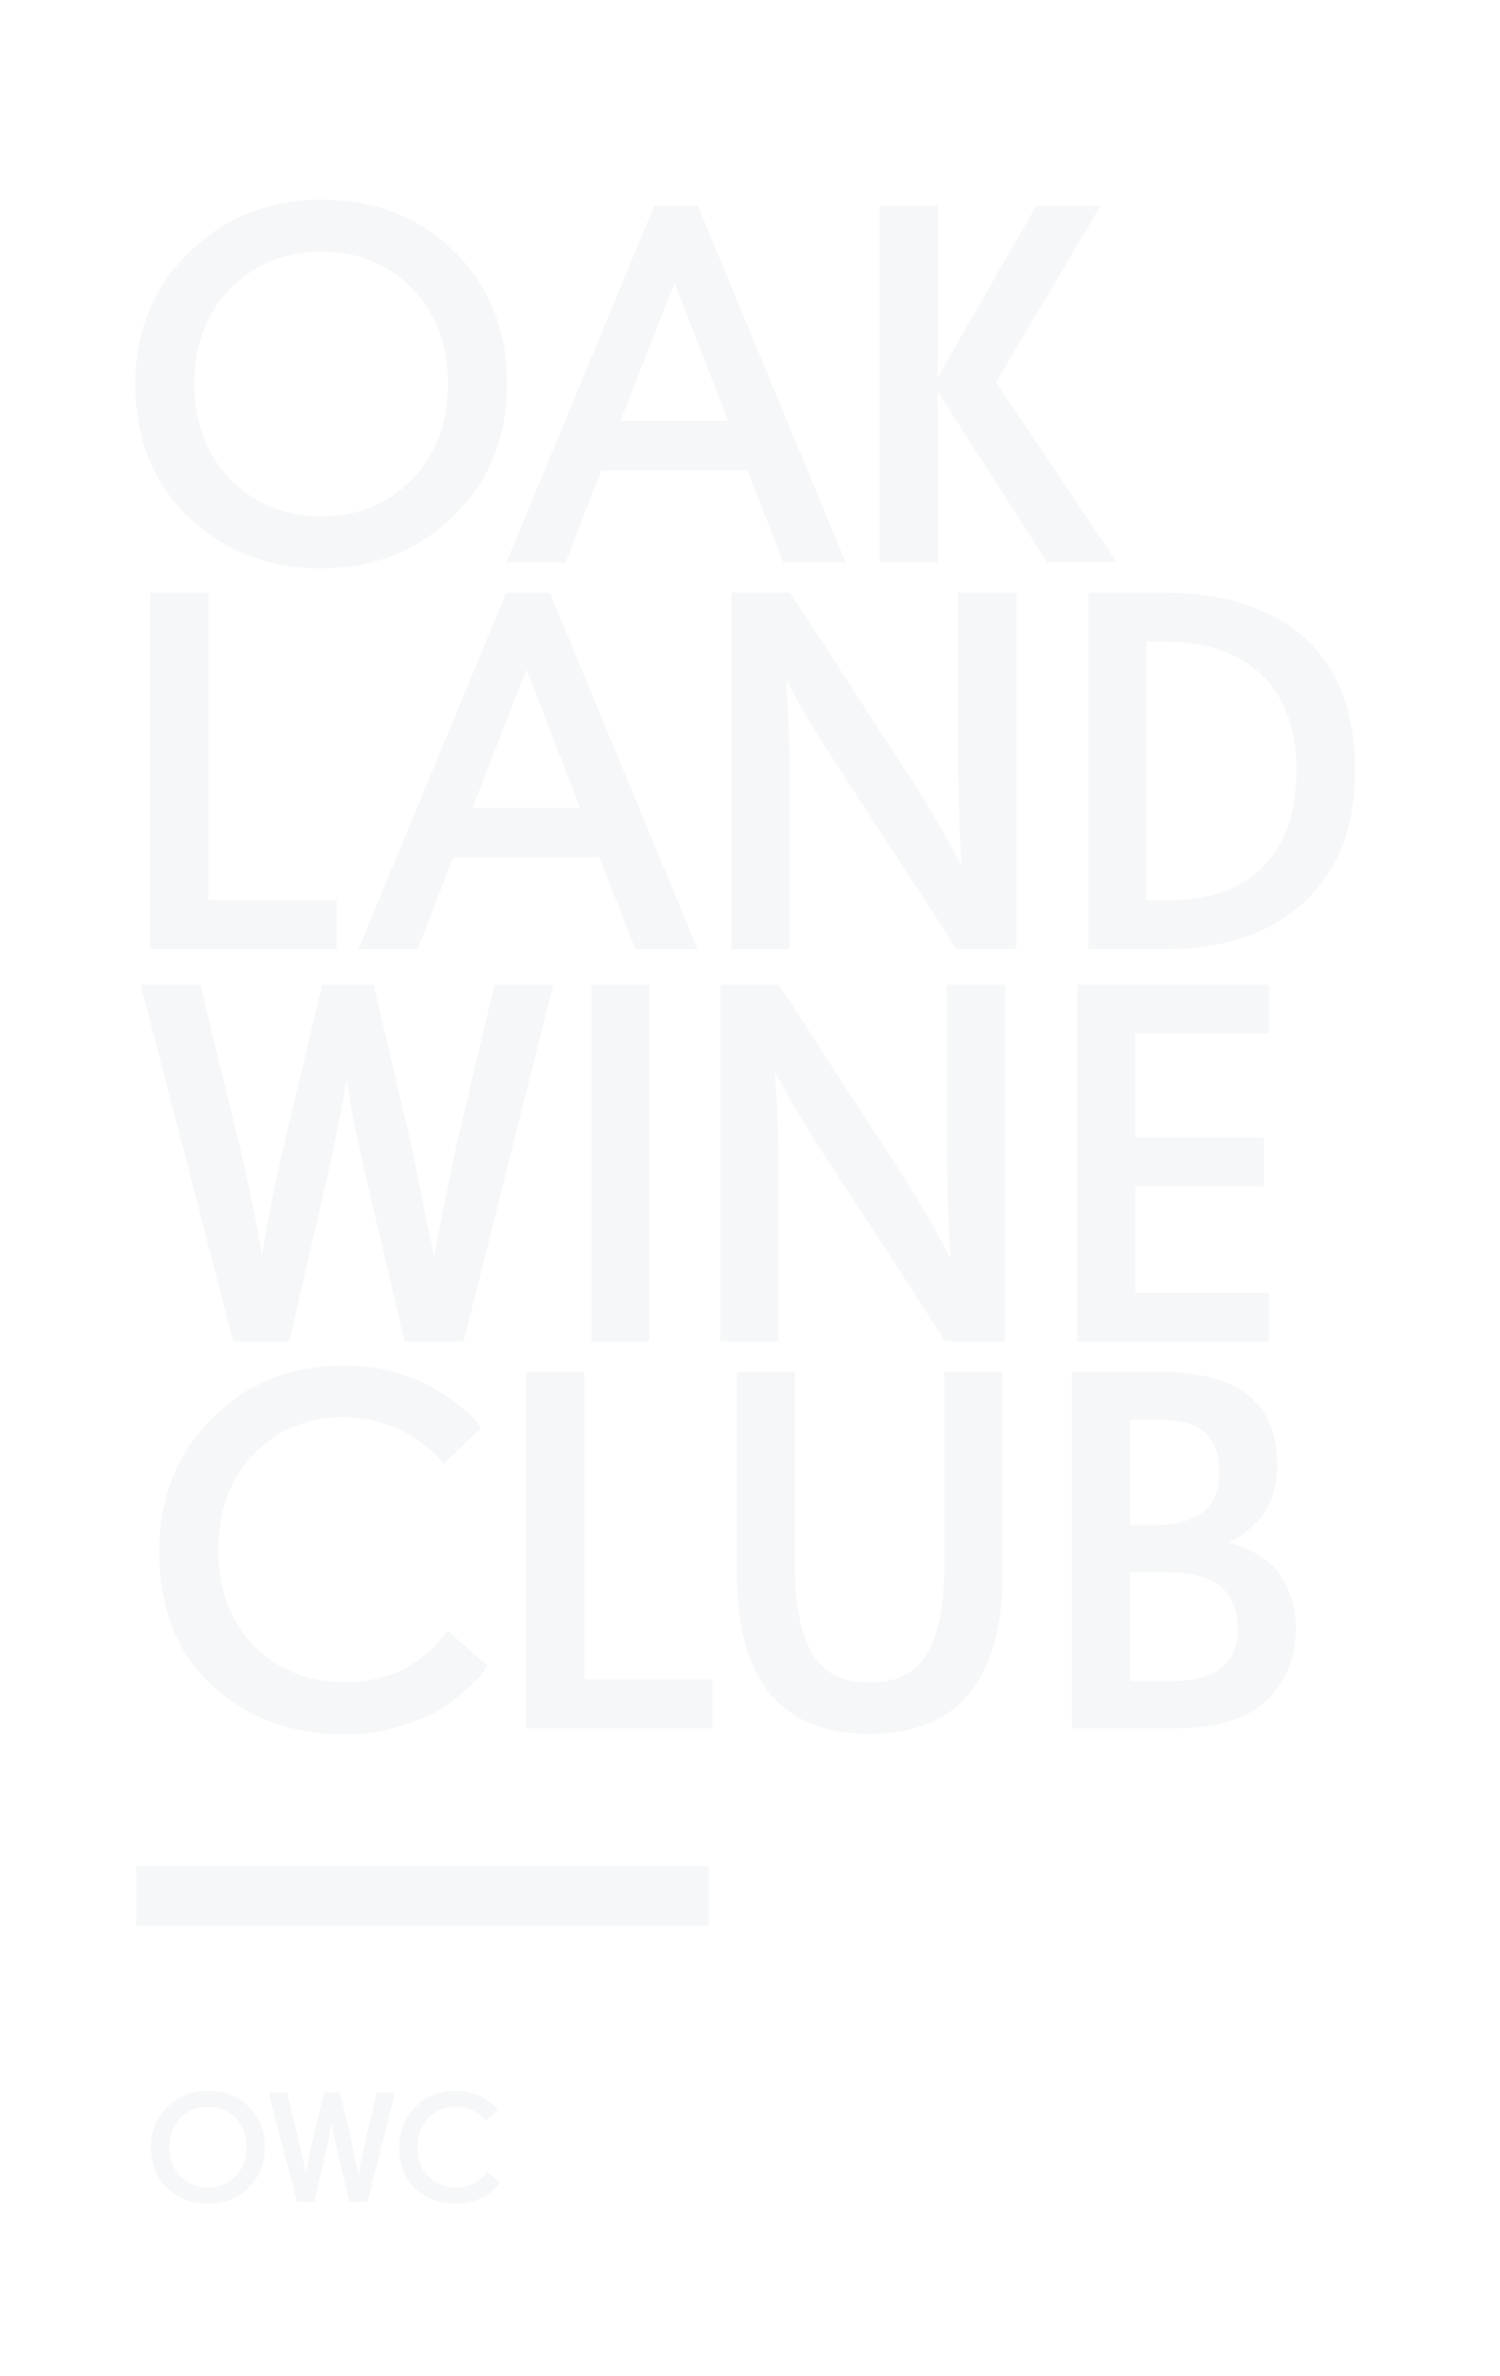 OAKLAND WINE CLUB